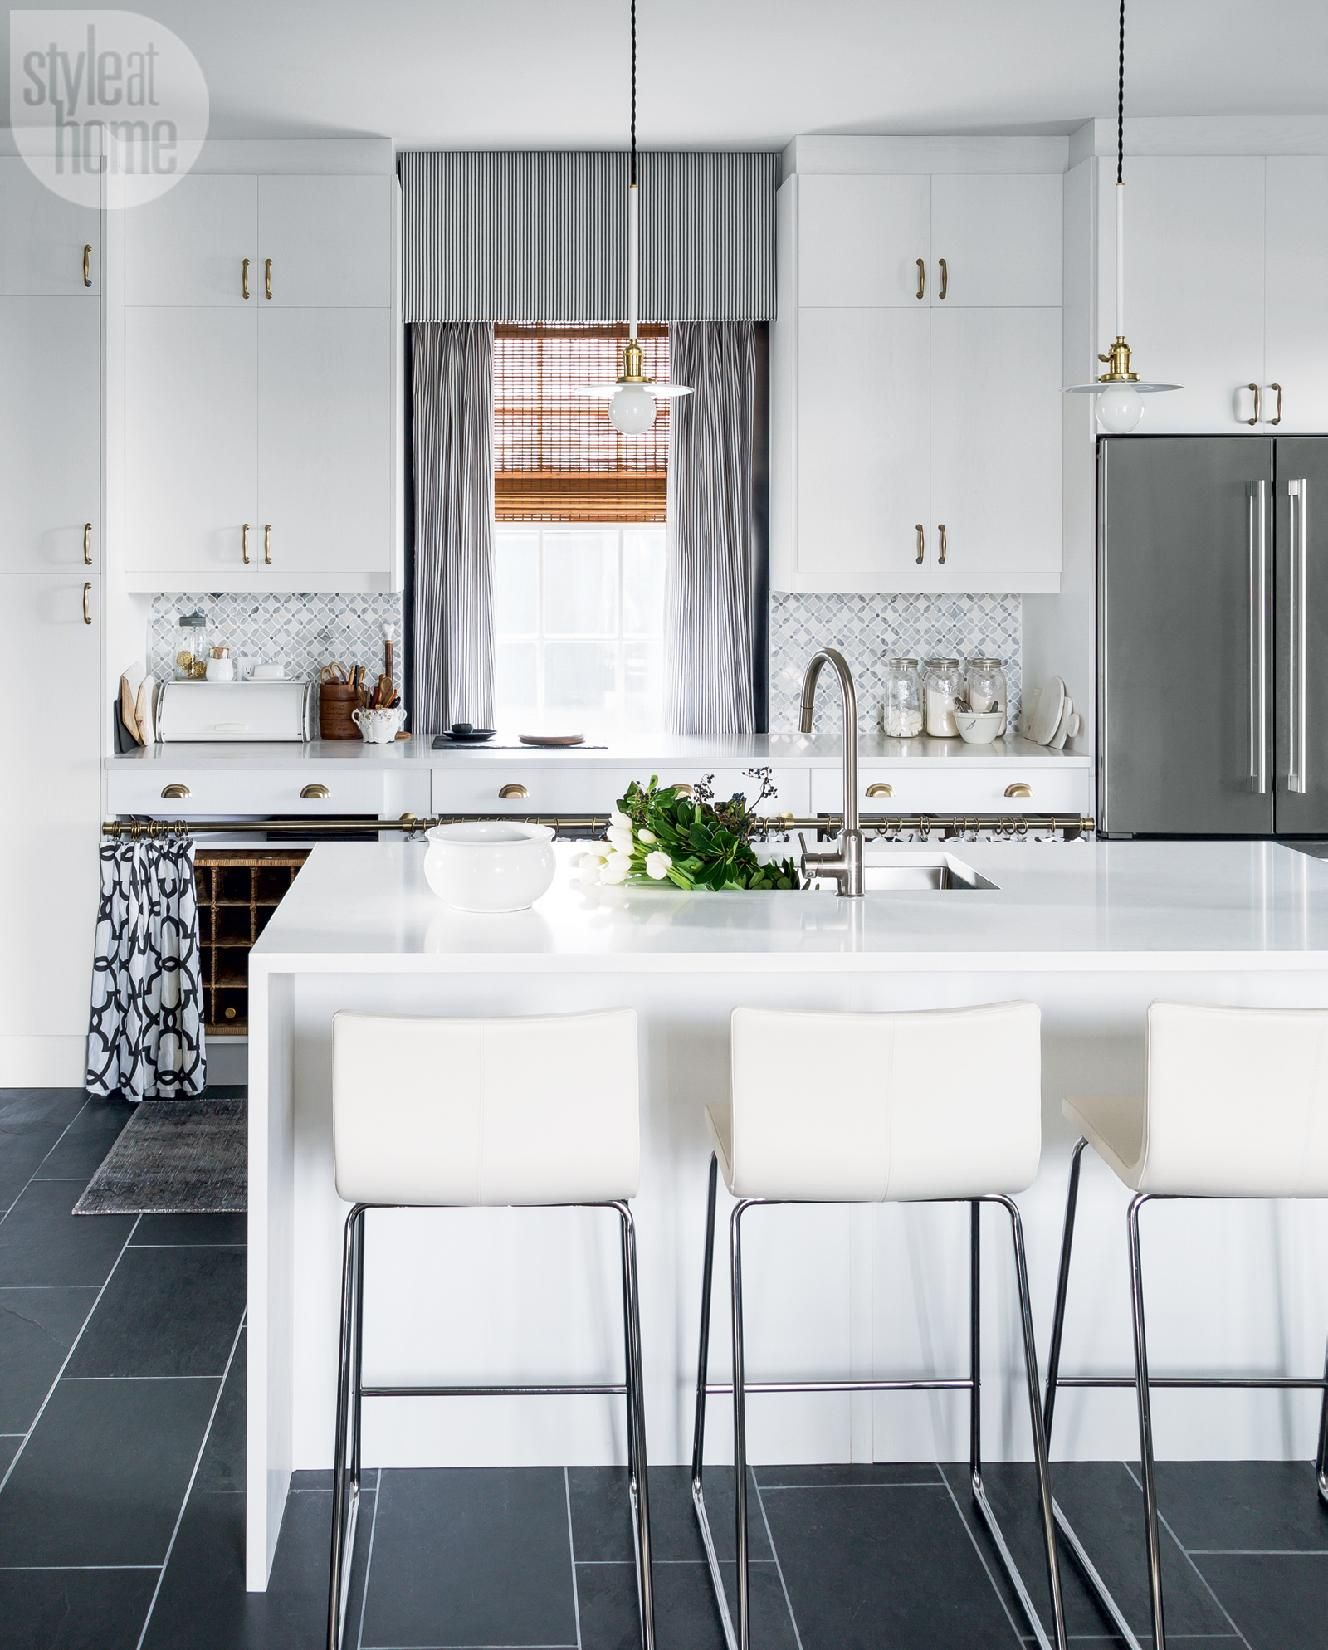 A bespoke kitchen remodel with Nordic country flair